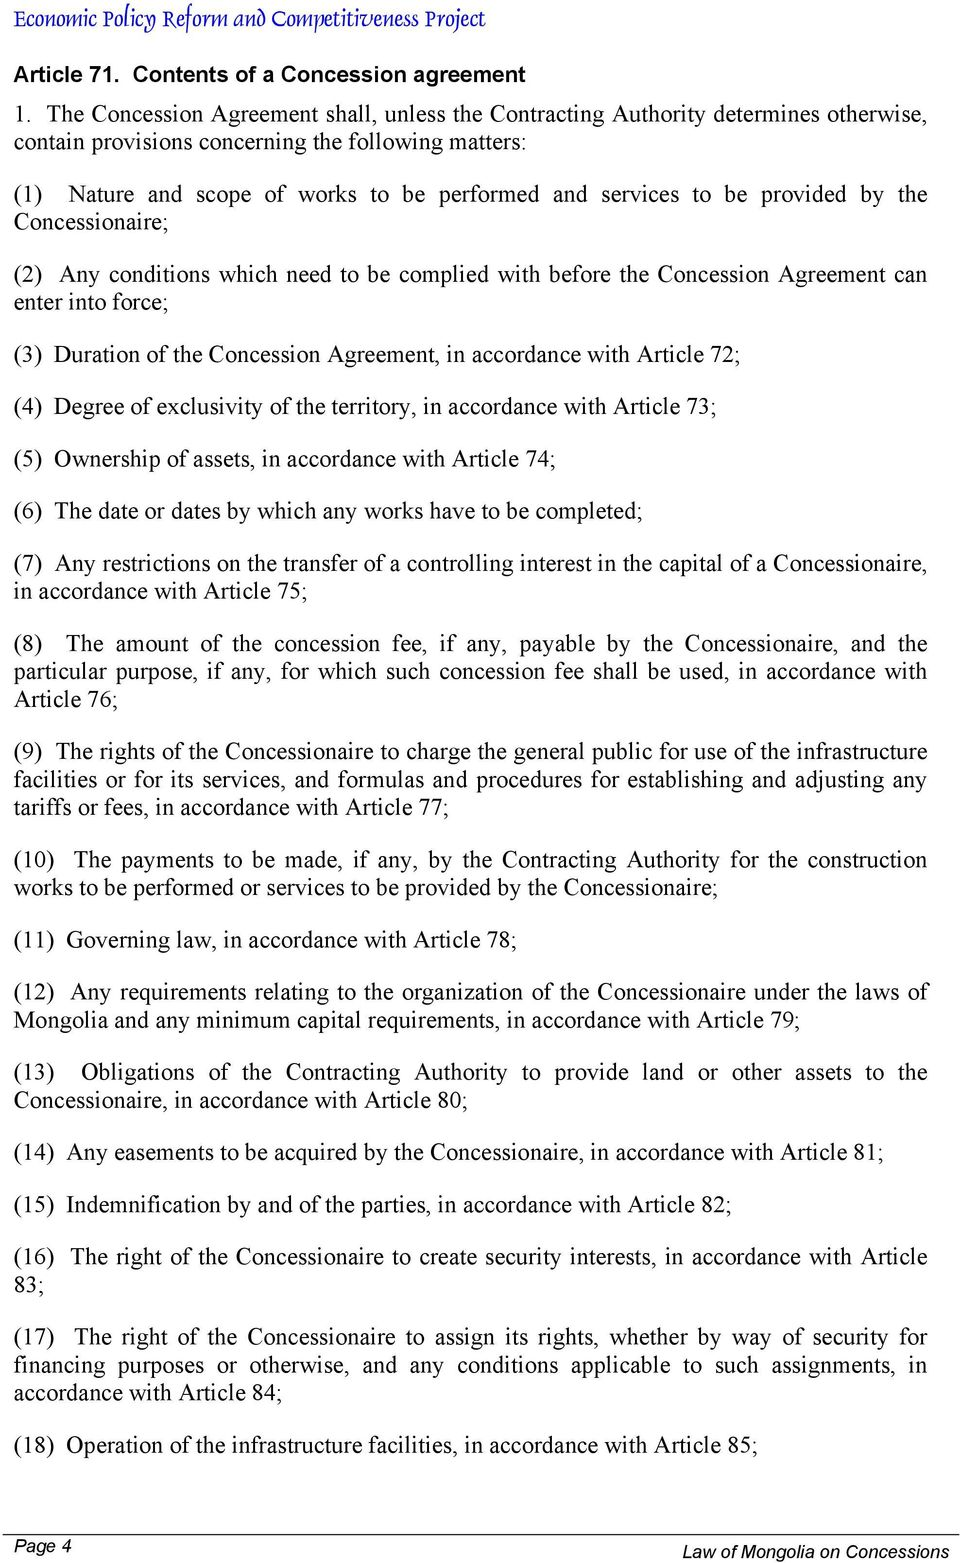 to be provided by the Concessionaire; (2) Any conditions which need to be complied with before the Concession Agreement can enter into force; (3) Duration of the Concession Agreement, in accordance